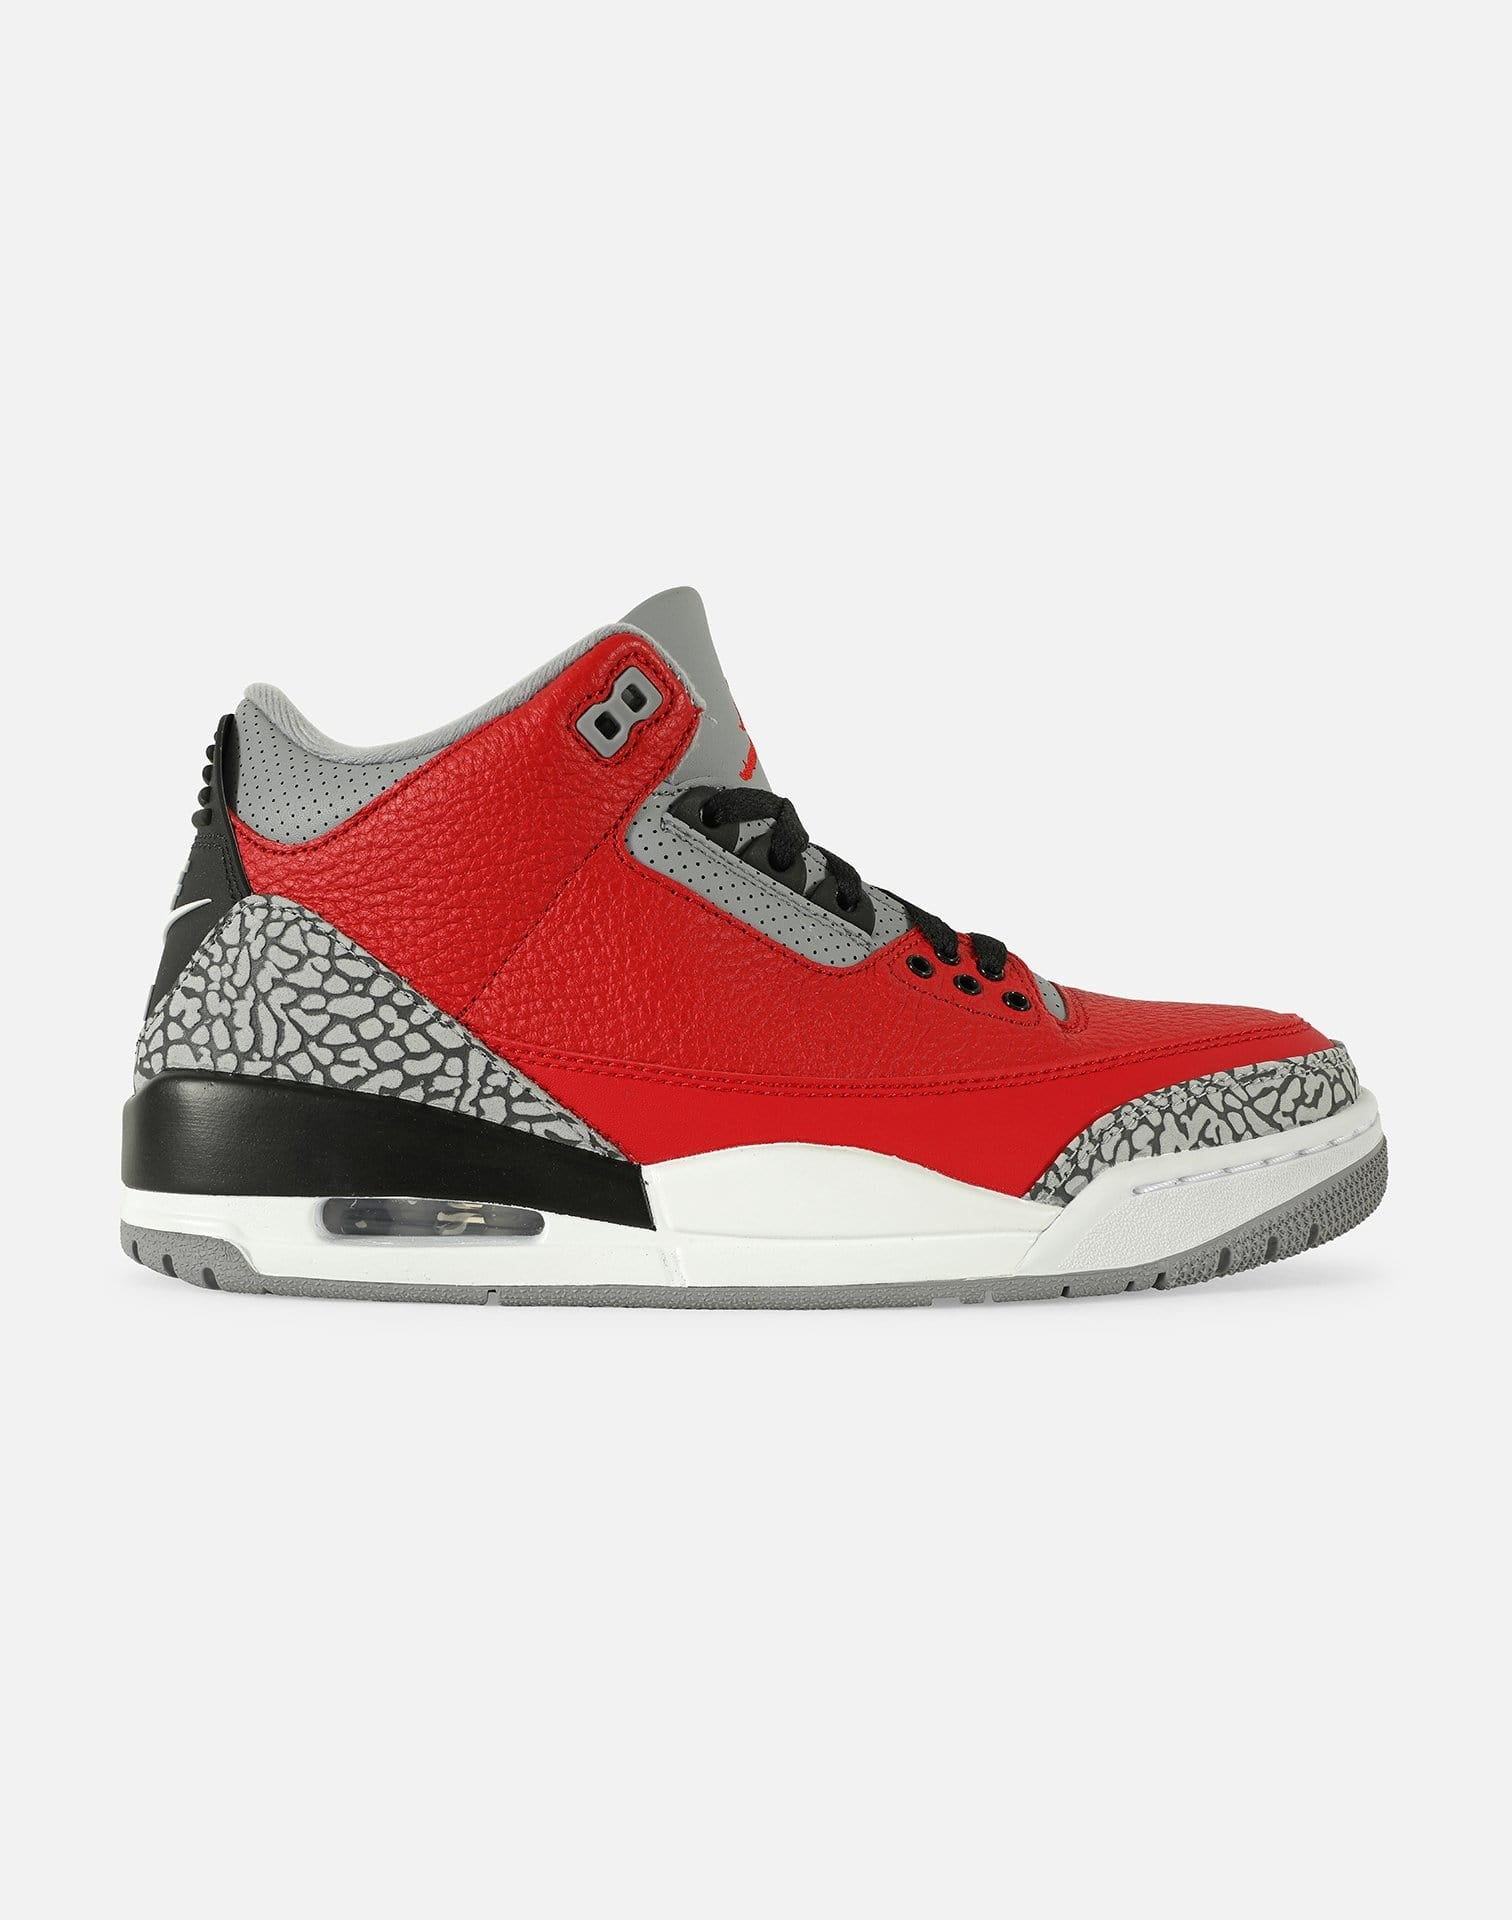 Jordan AIR JORDAN RETRO 3 SE 'CHICAGO'